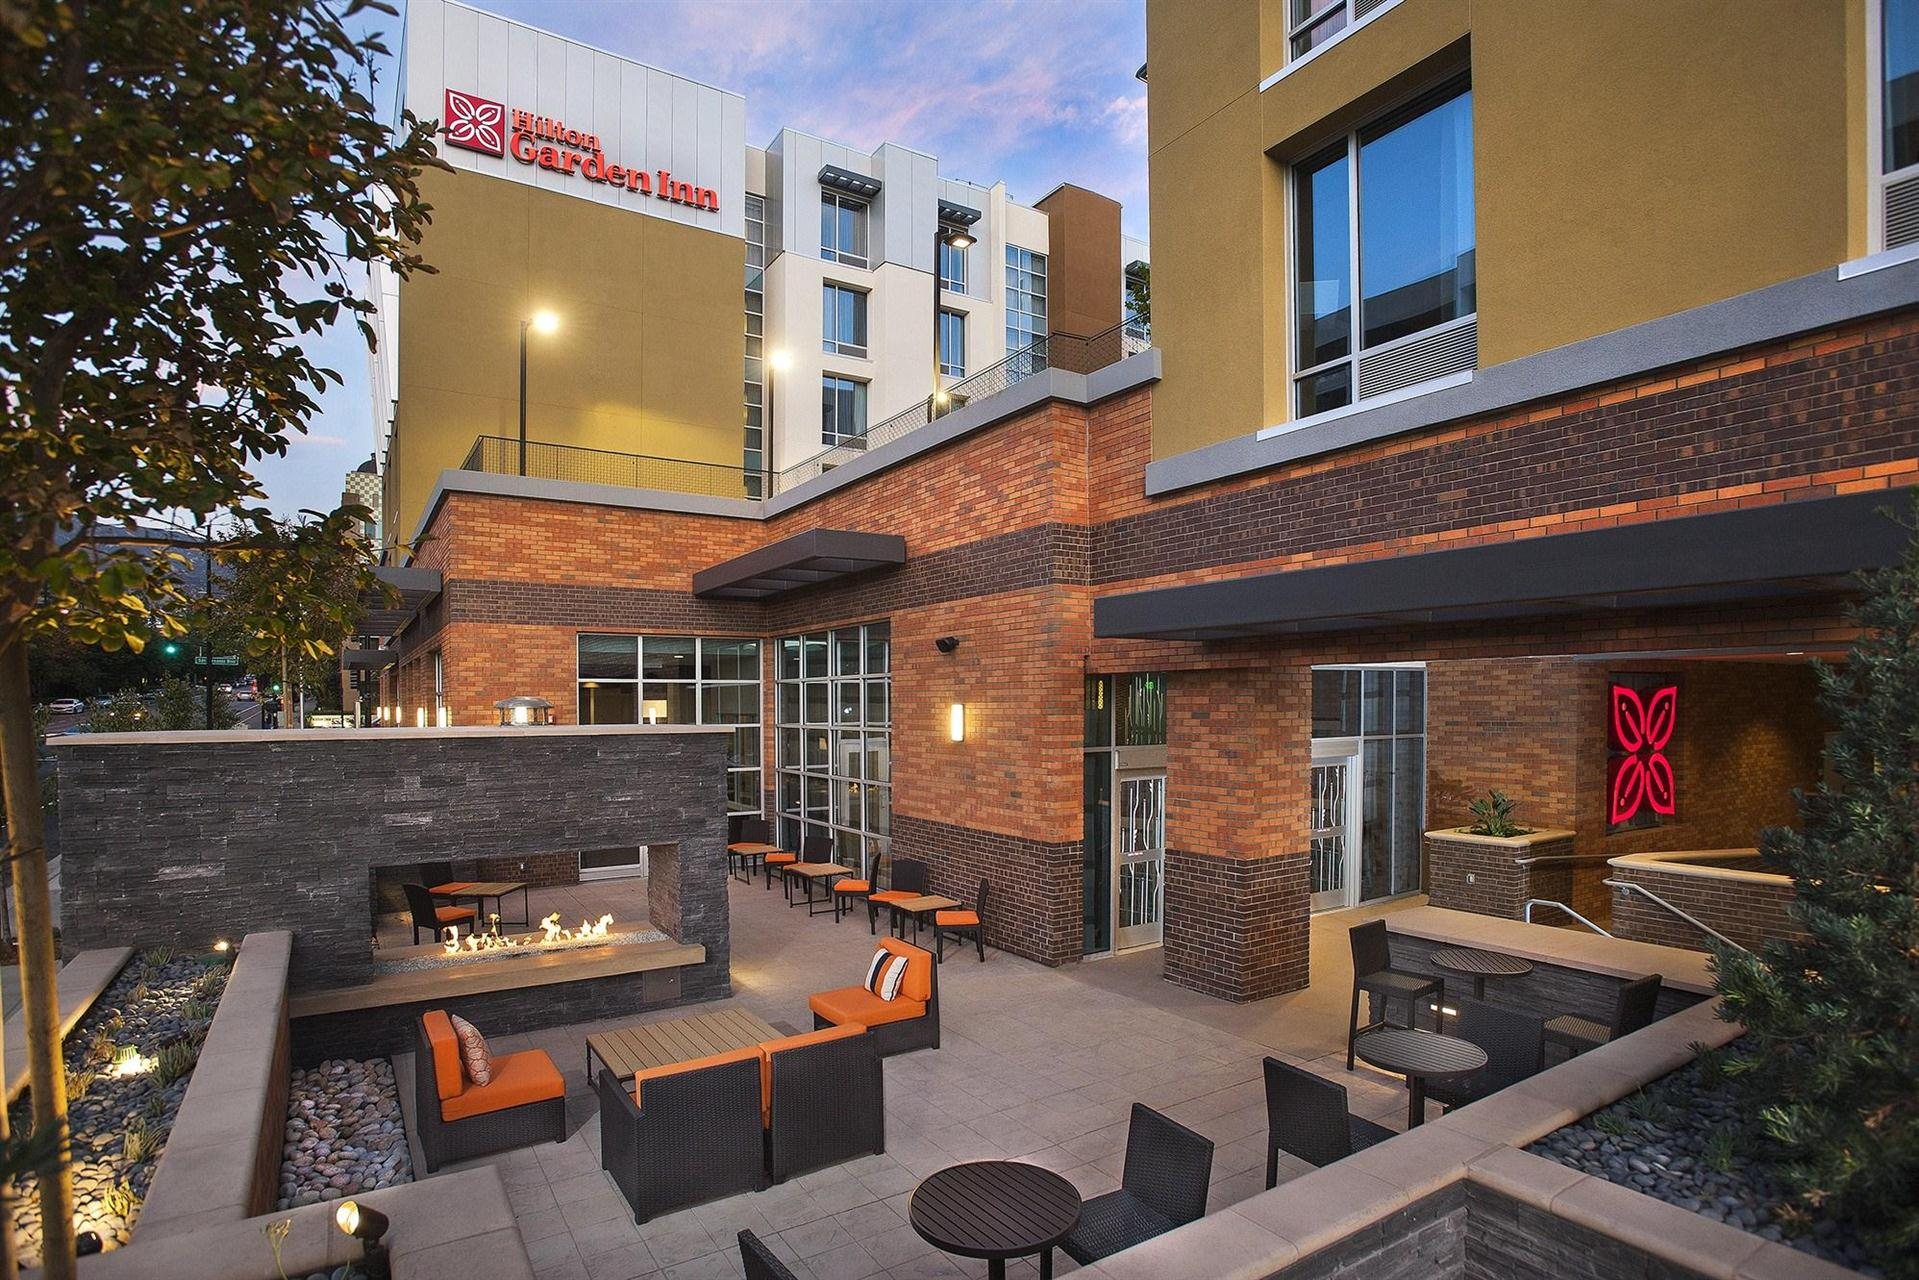 Awesome Hilton Garden Inn Locations Motif - Brown Nature Garden ...